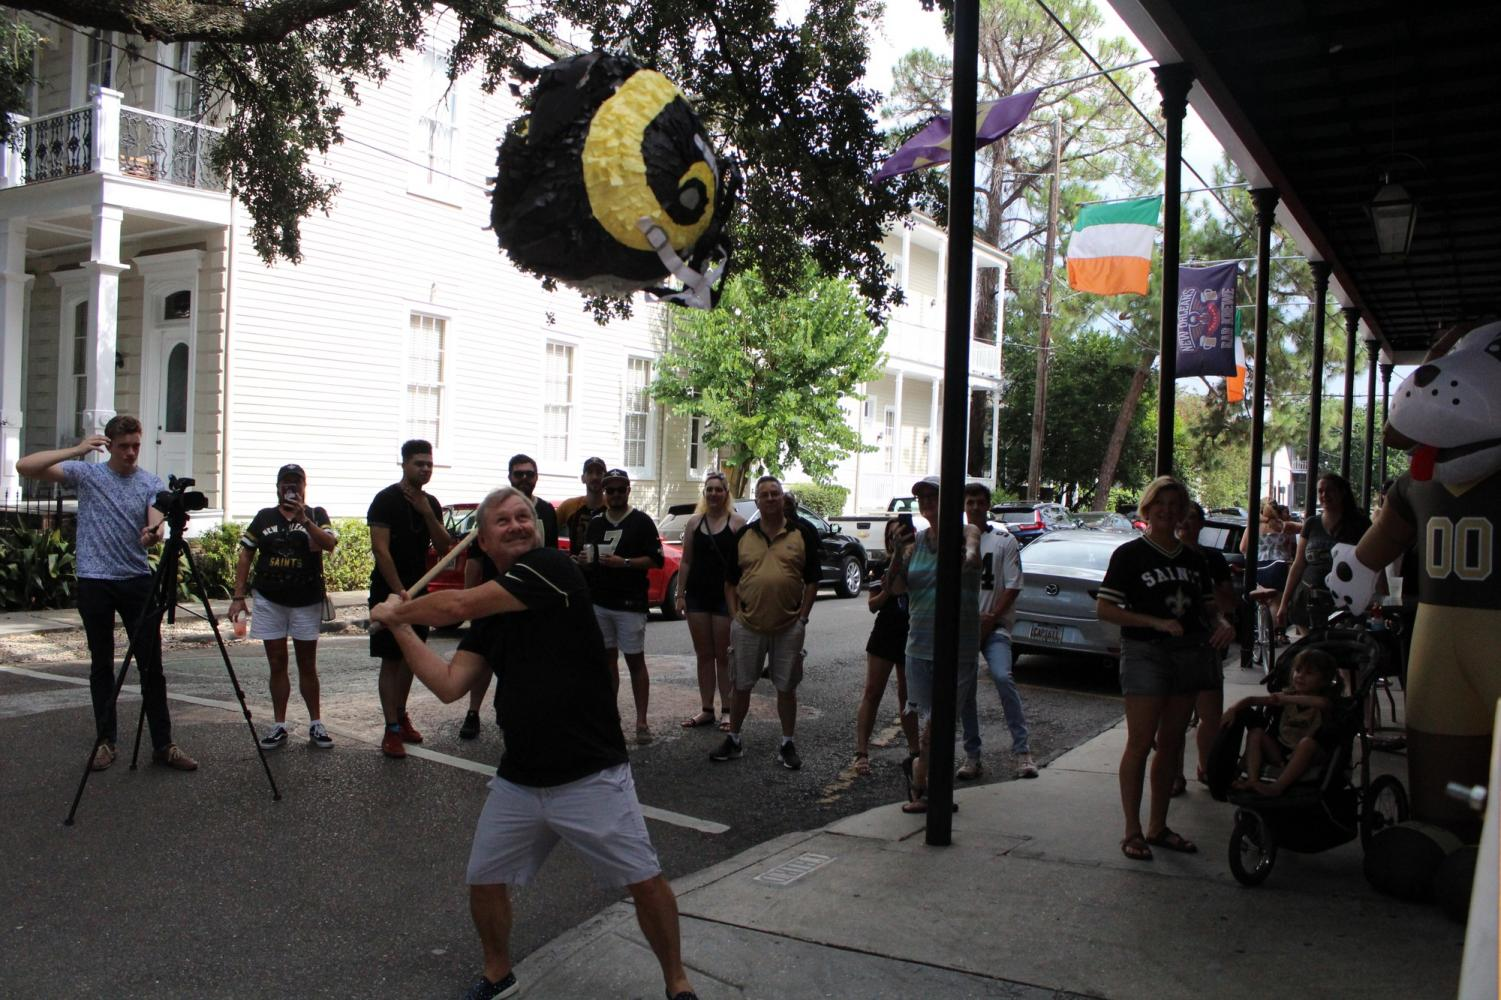 Fans line up to crack open a L.A. Rams pinata ahead of the Saints vs. Rams game on September 15, 2019. Saints fans did their best to release their frustration before the game. Photo credit: Andres Fuentes